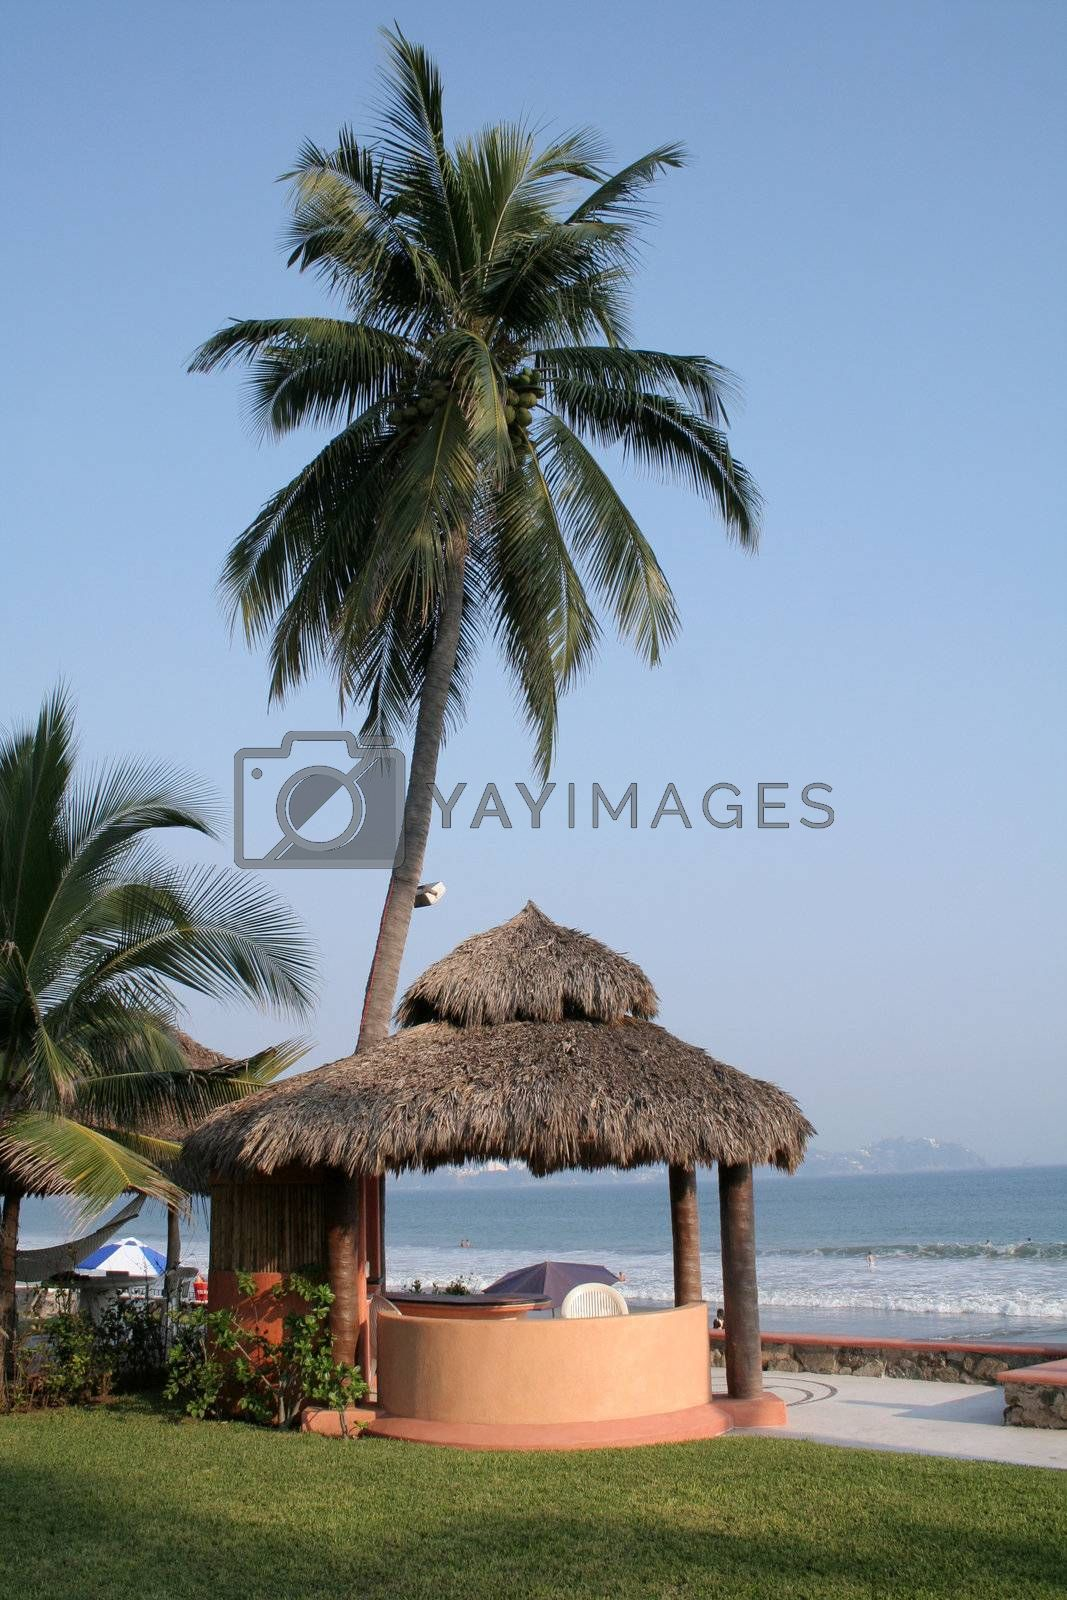 cabana under palm tree over looking ocean